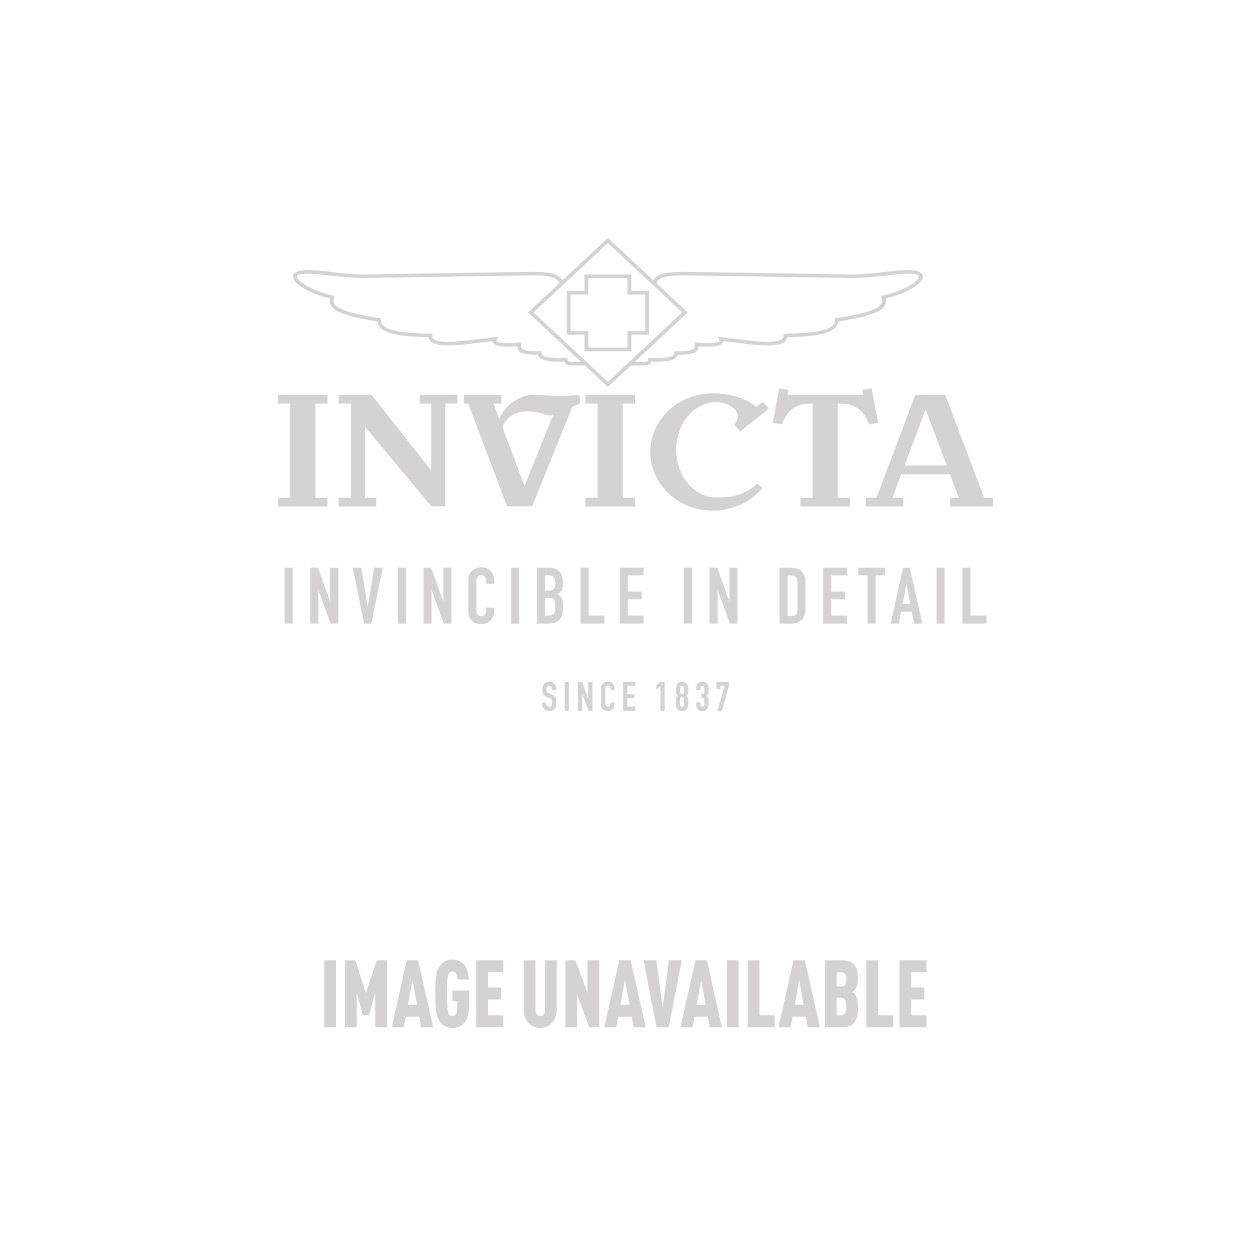 Invicta Sea Hunter  Quartz Watch - Rose Gold, Black case with Rose Gold, Black tone Stainless Steel band - Model 11162